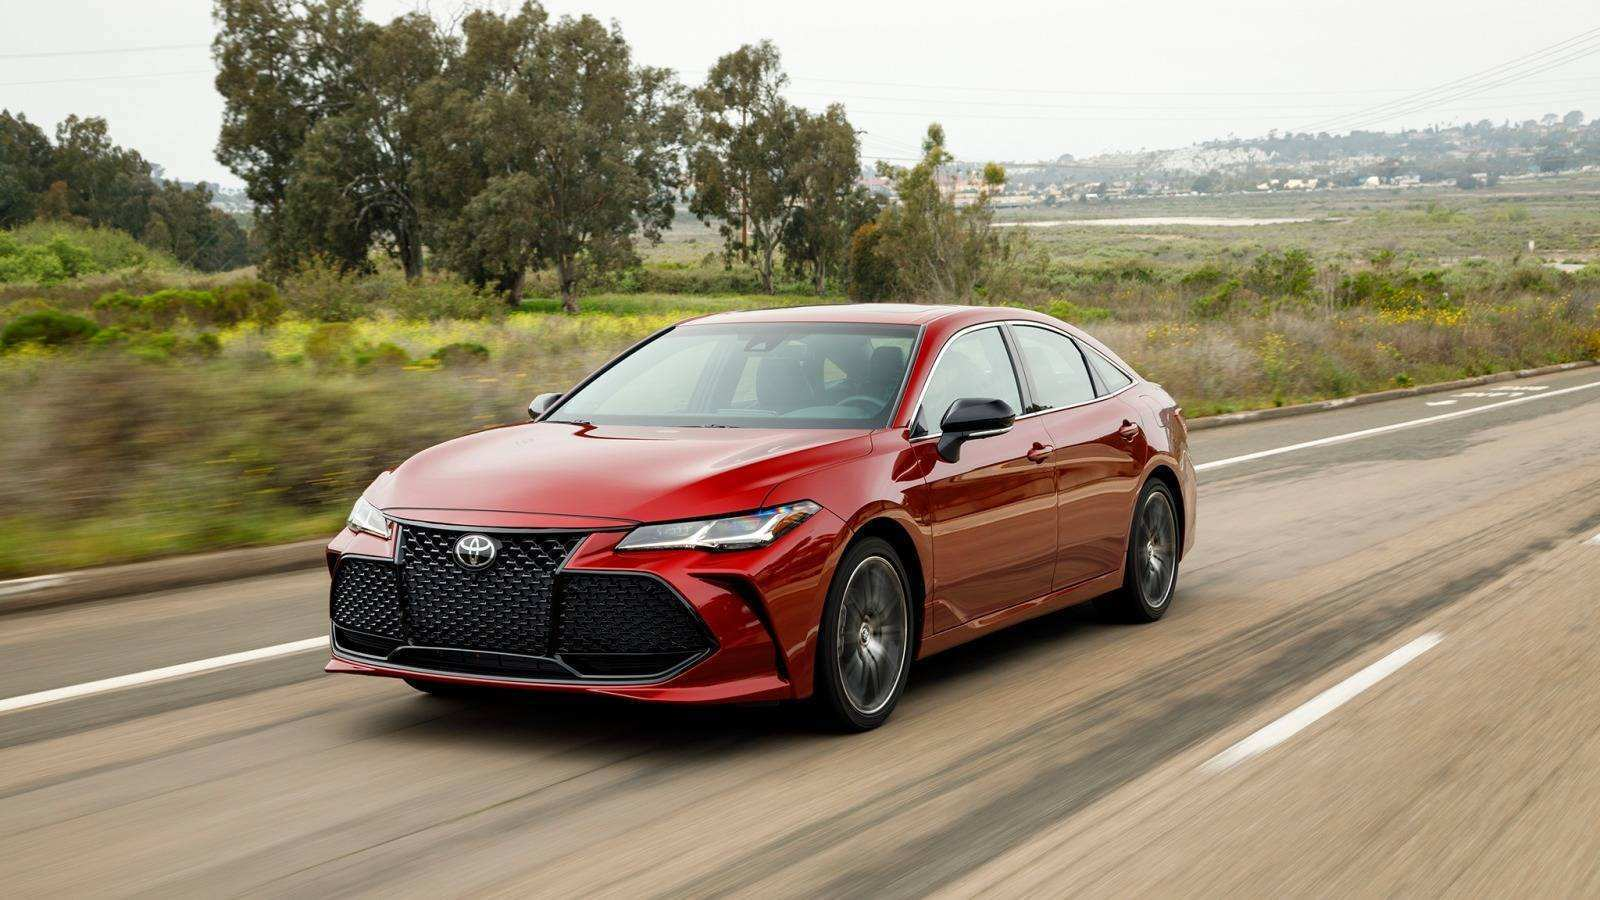 57 All New New Sedan Toyota 2019 Overview And Price Specs by New Sedan Toyota 2019 Overview And Price